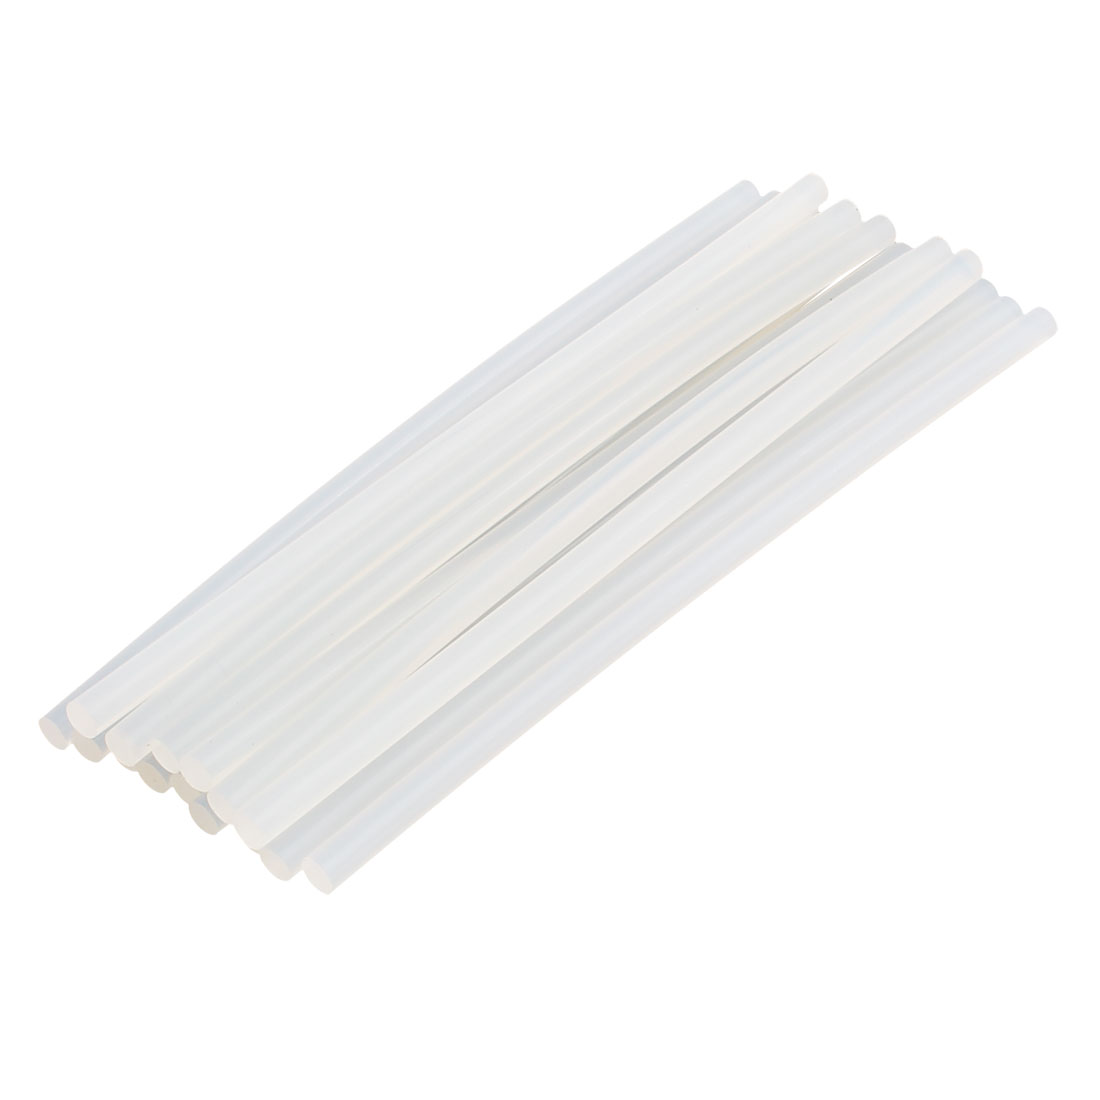 15 Pcs 7mm x 200mm Hot Melt Glue Adhesive Stick Clear for Electric Tool Heating Gun